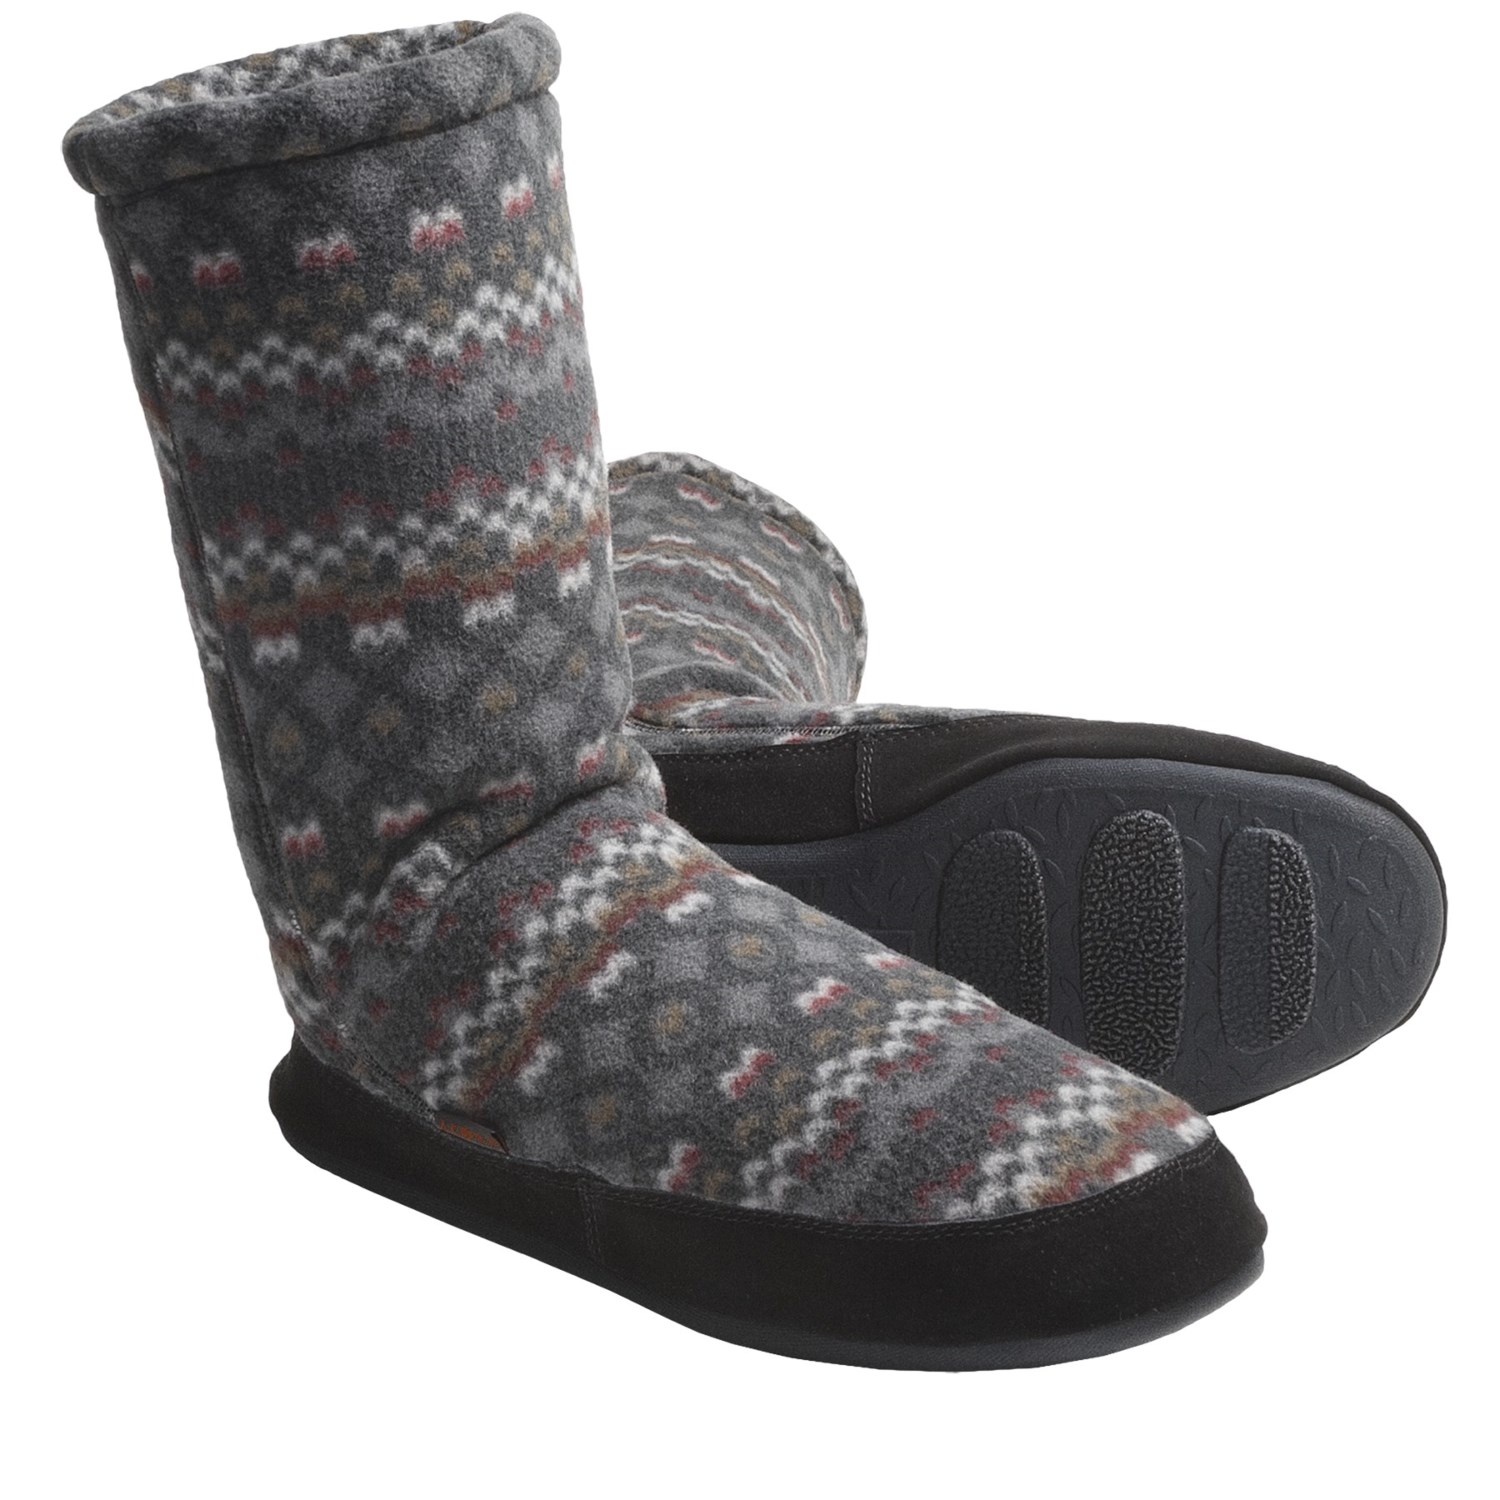 Find great deals on eBay for mens shoe socks. Shop with confidence.